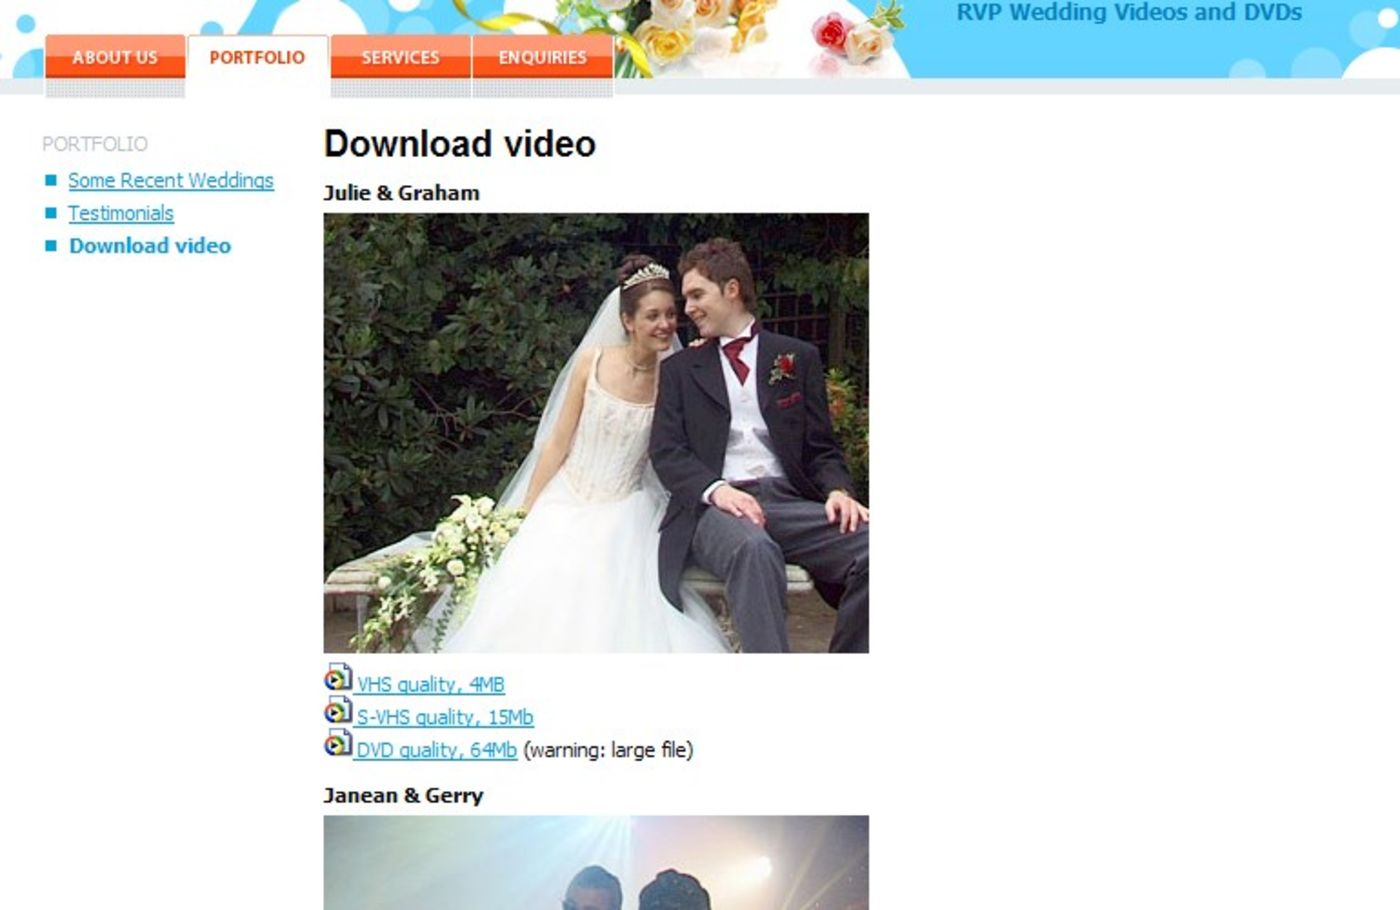 RVP Wedding Videos and DVDs Portfolio page